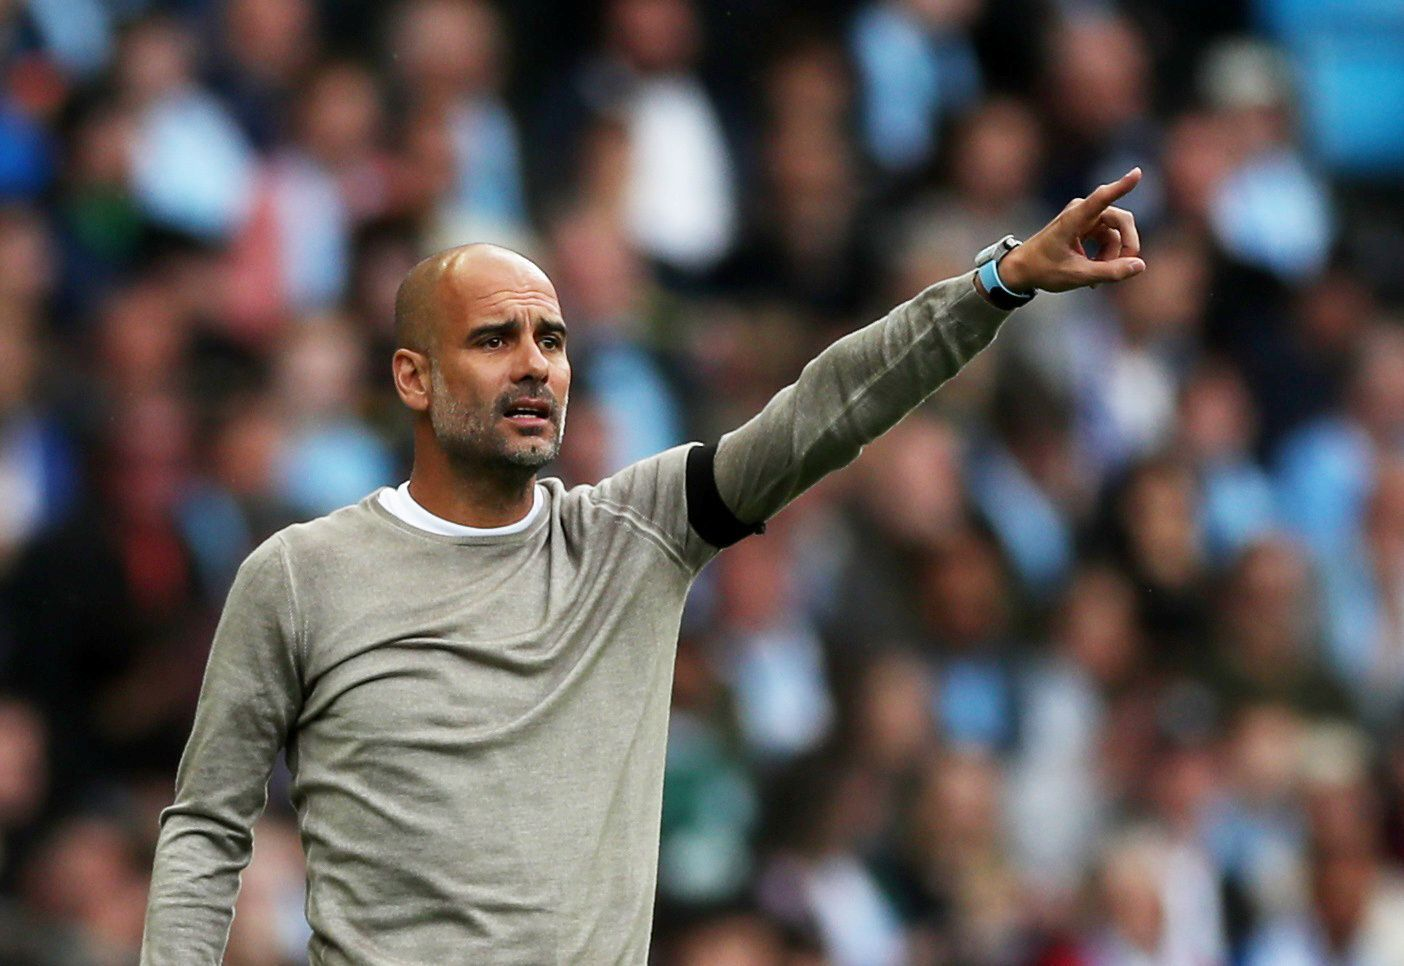 Football - Ligue des champions - Guardiola et Manchester City, pour tordre le cou à la malédiction de la C1